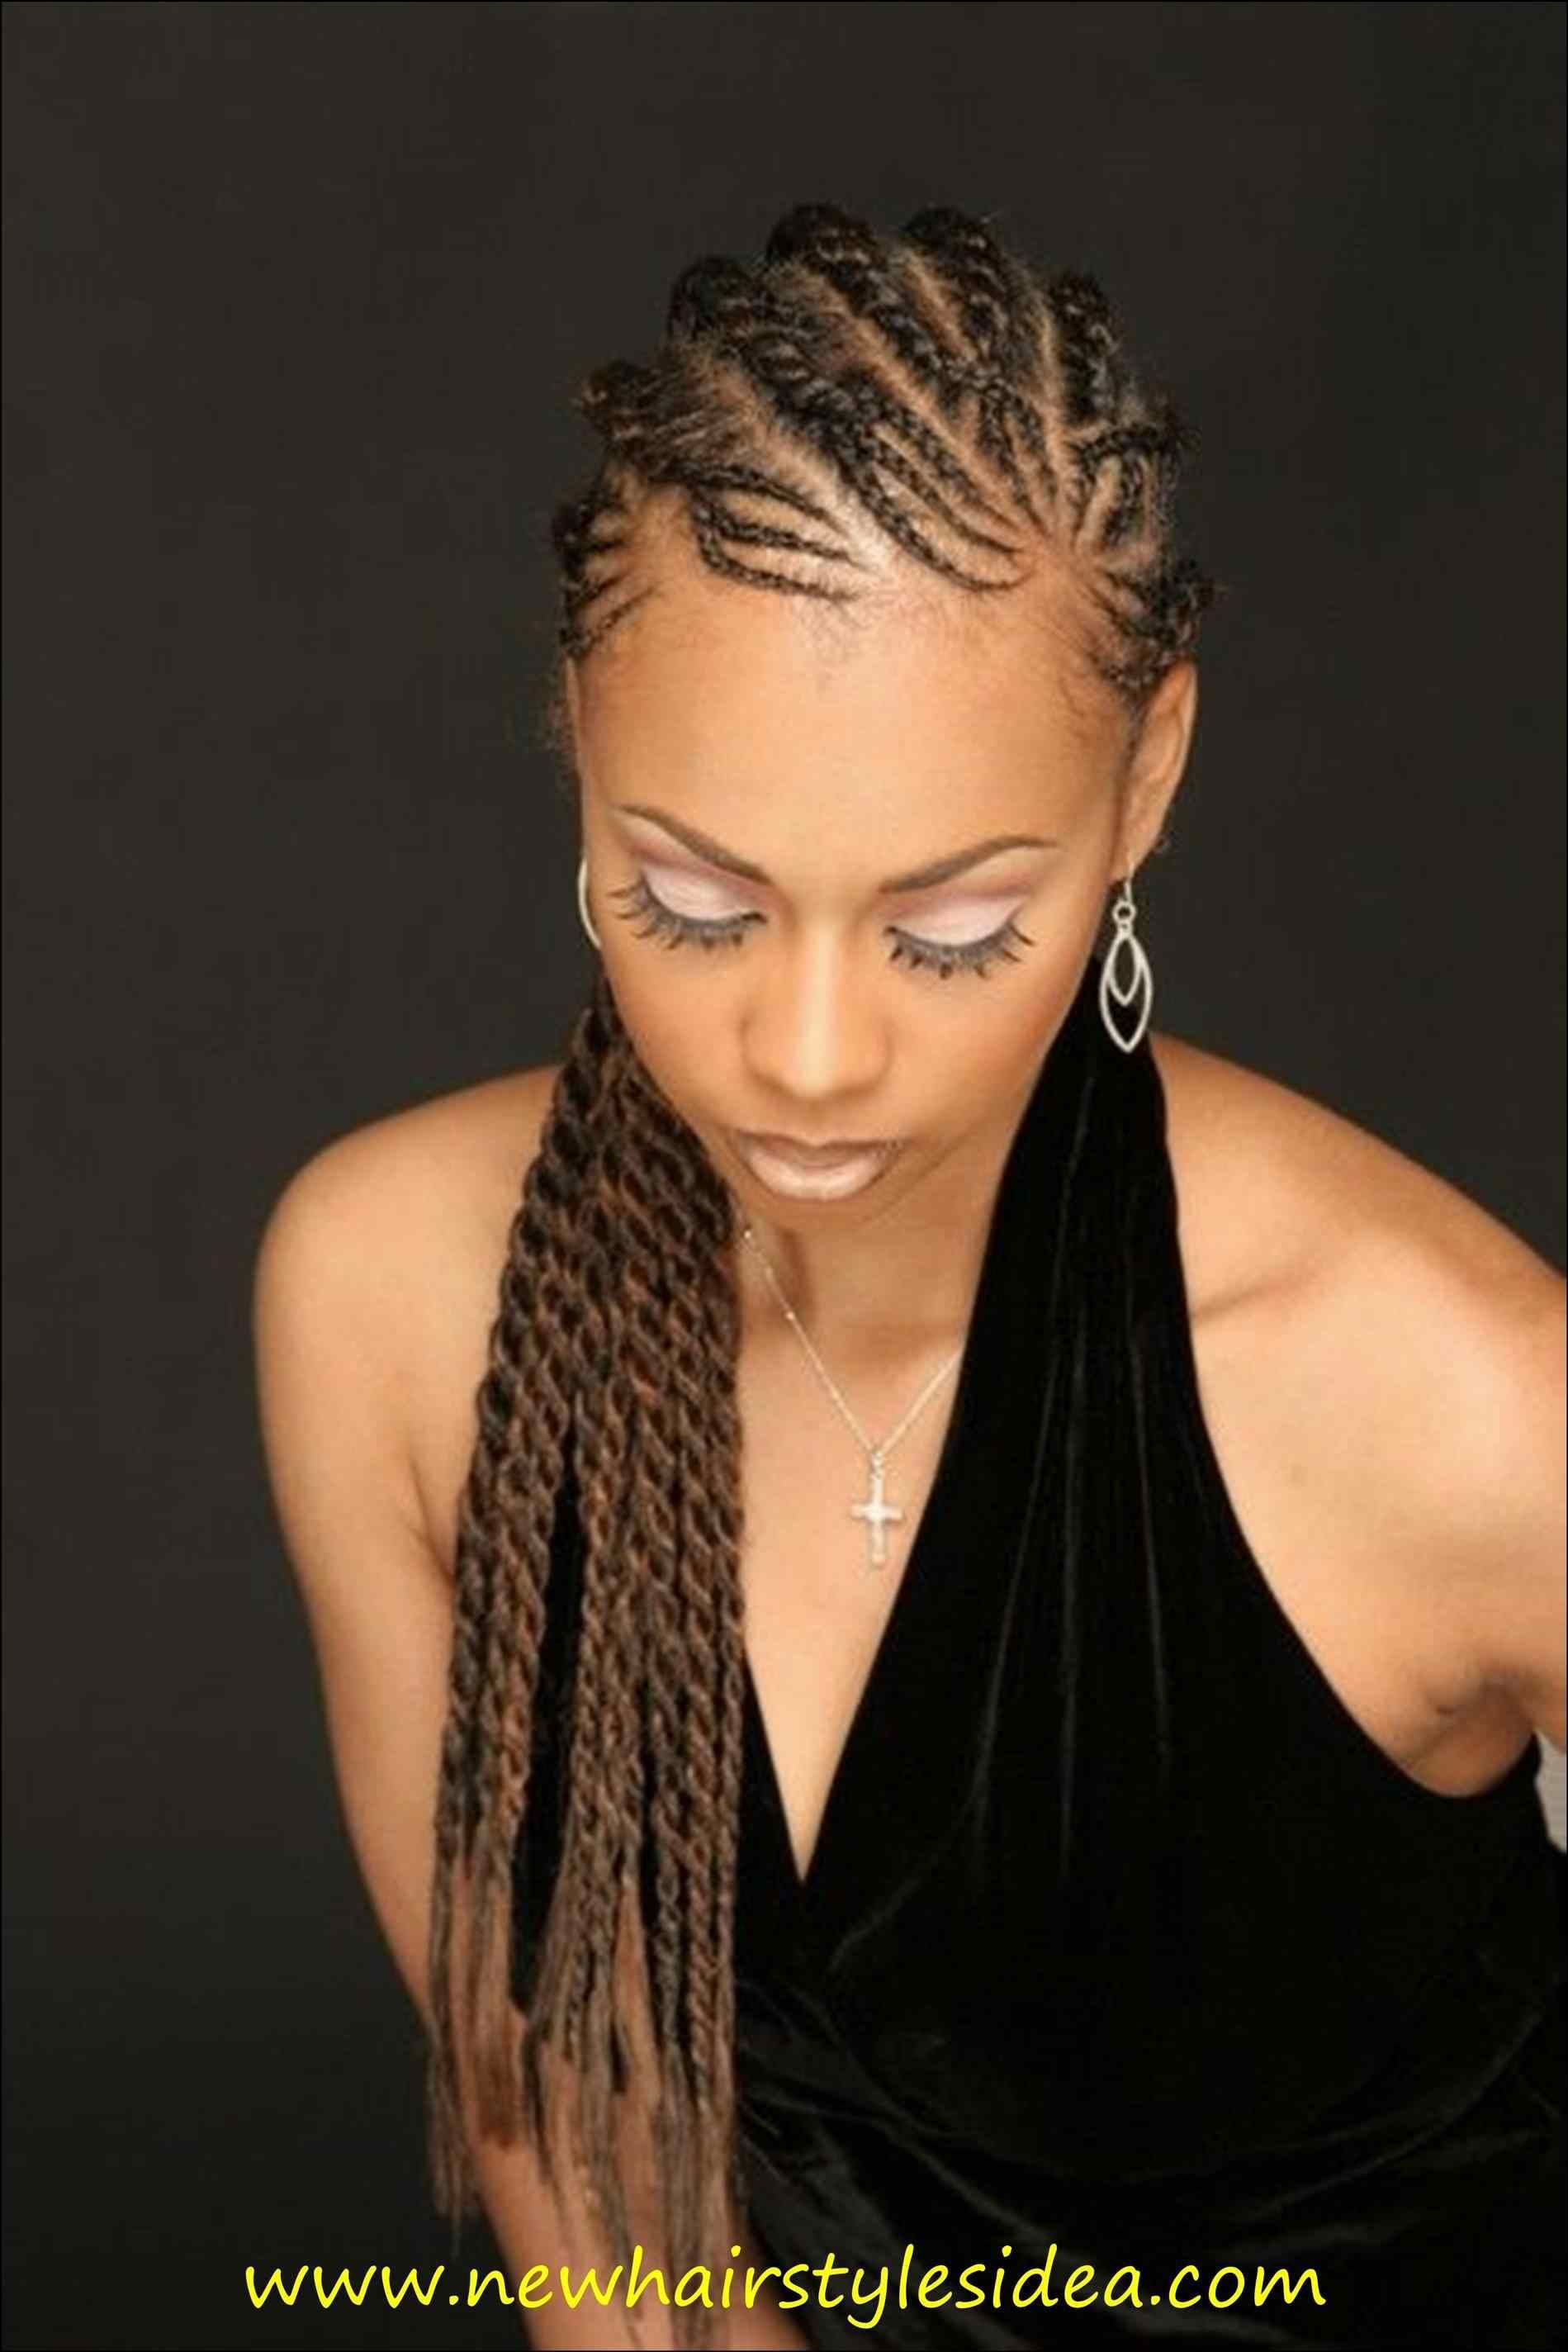 Alicia keys hairstyles opinion you